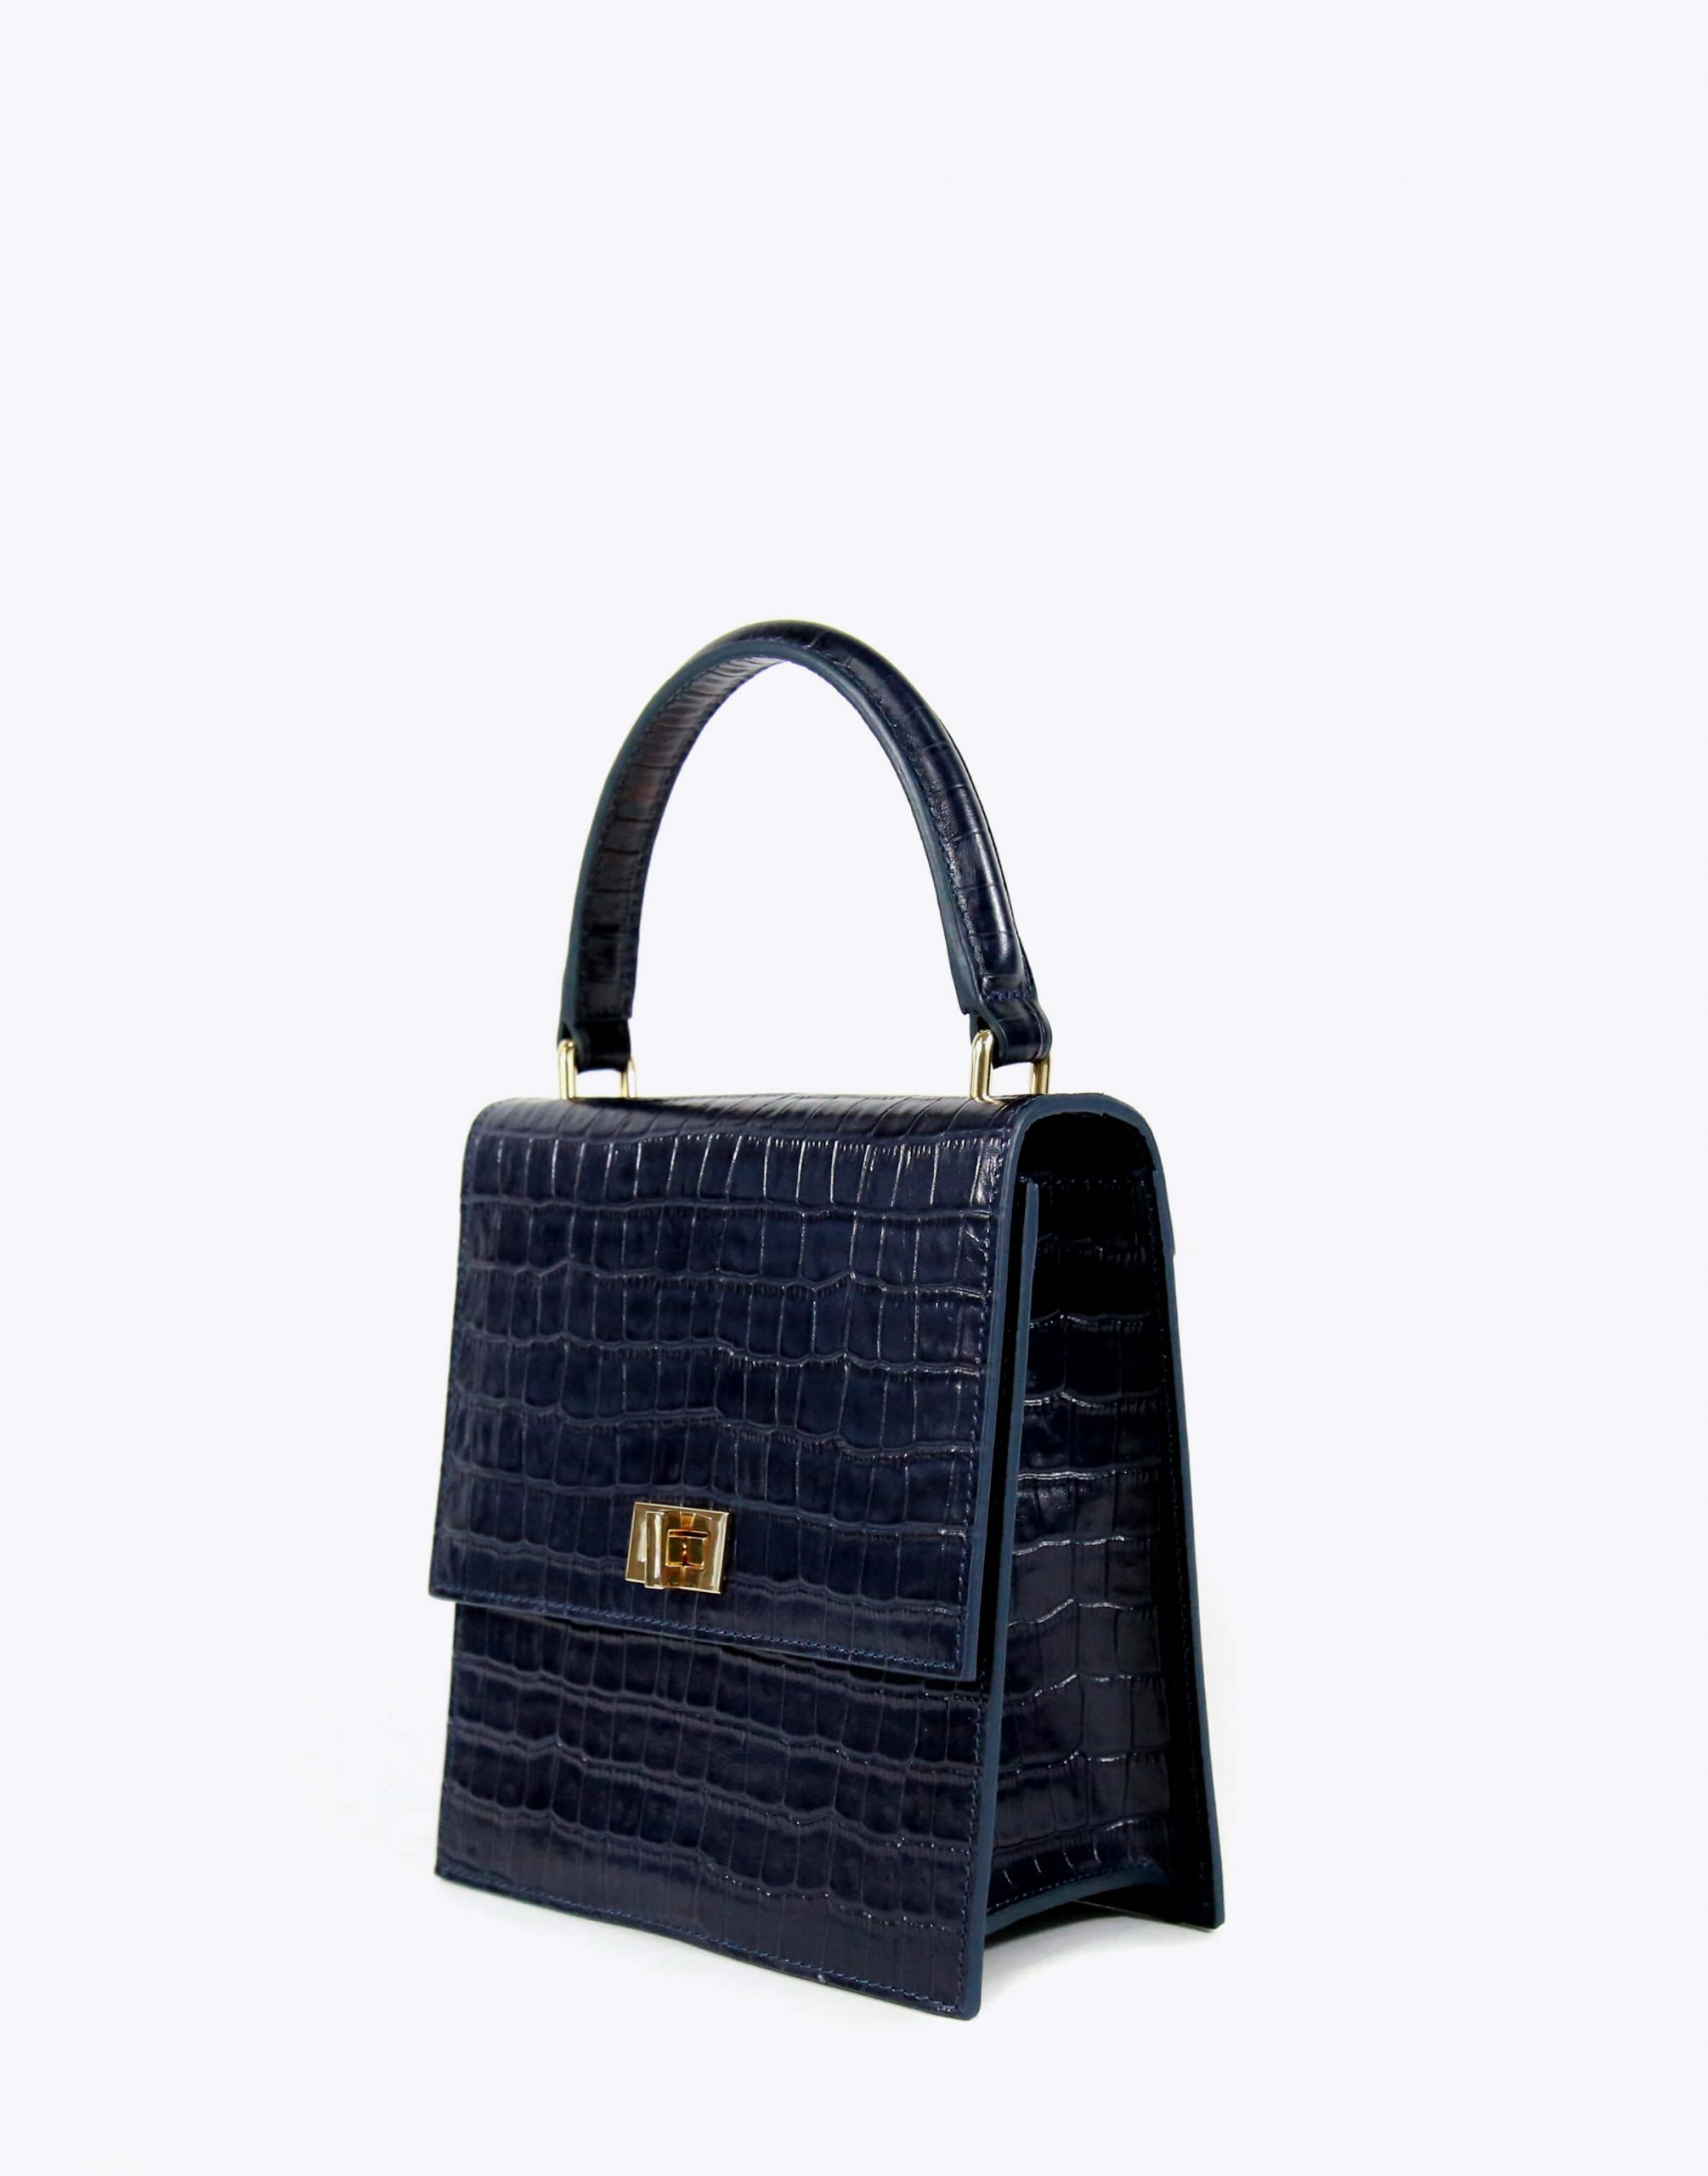 Neely & Chloe No. 19 Mini Lady Bag Croc Angle View Navy